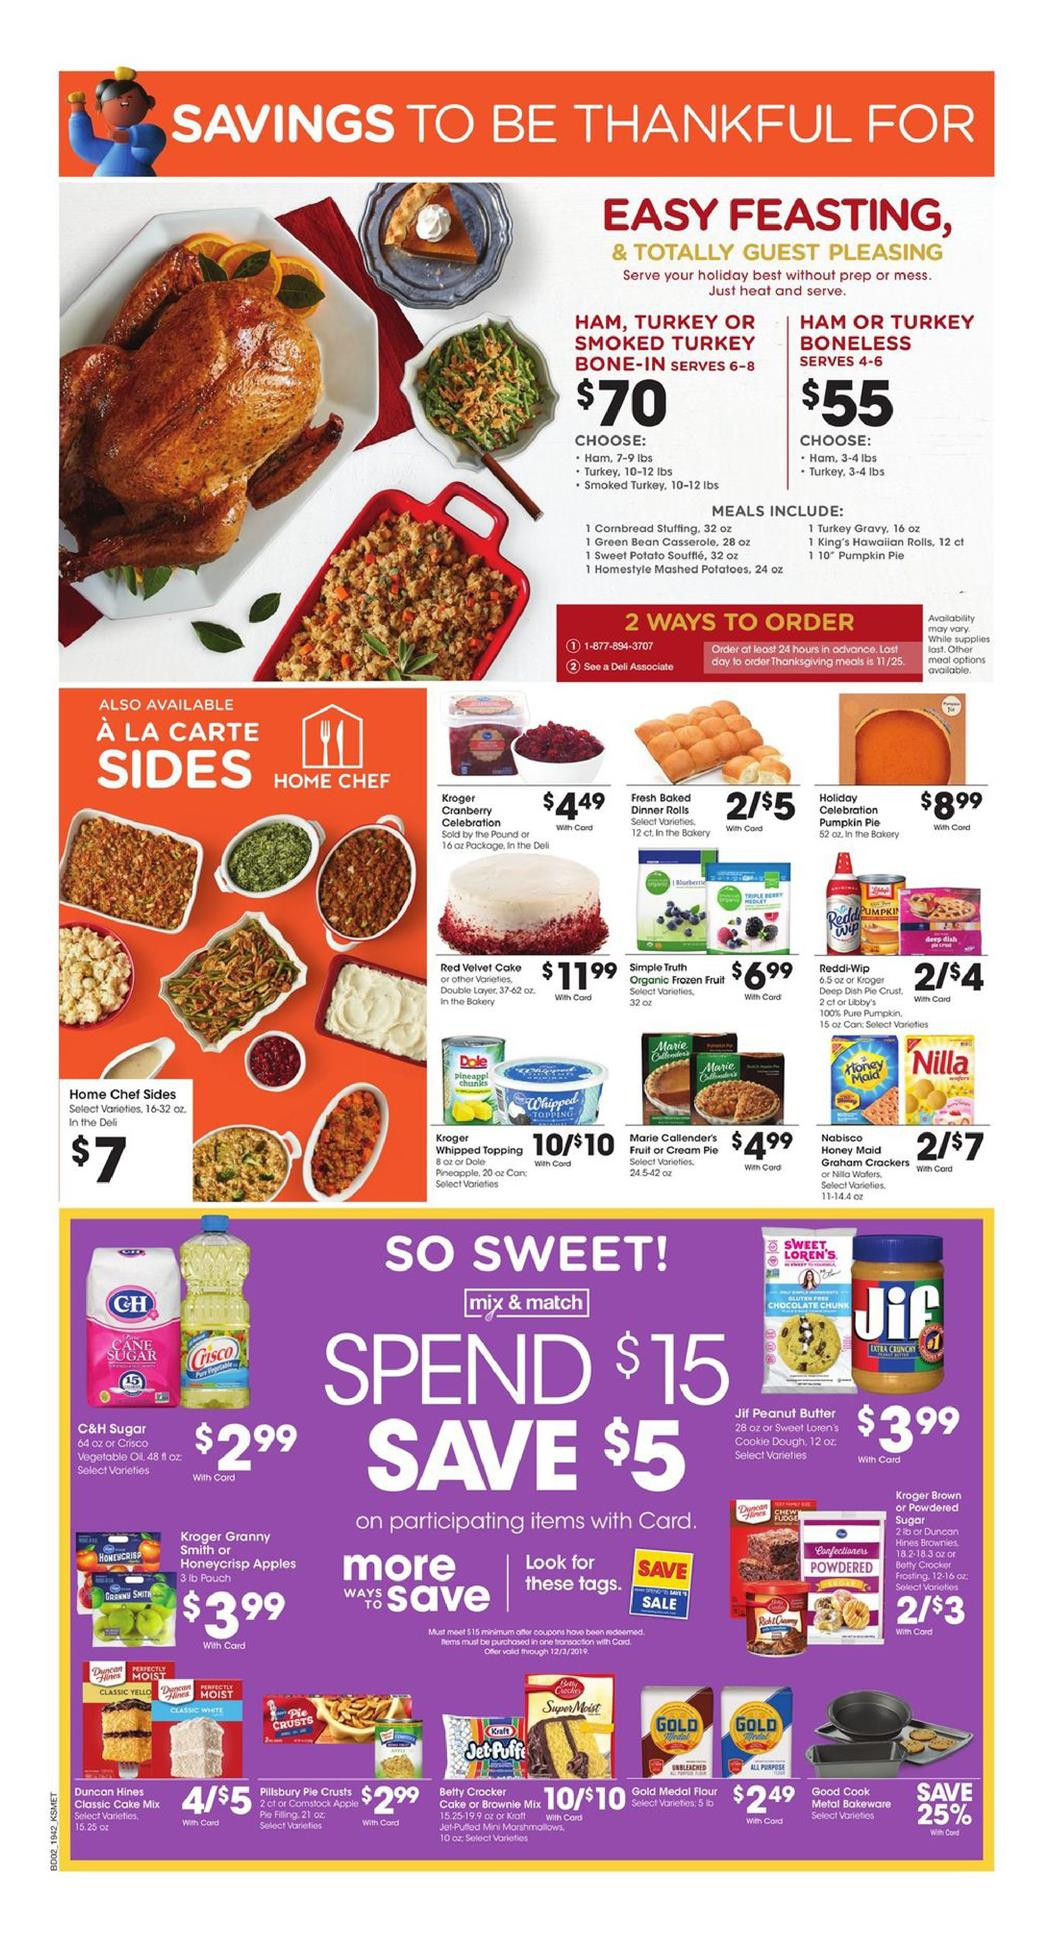 King Soopers Ad Thanksgiving Deals Nov 20 - 28, 2019